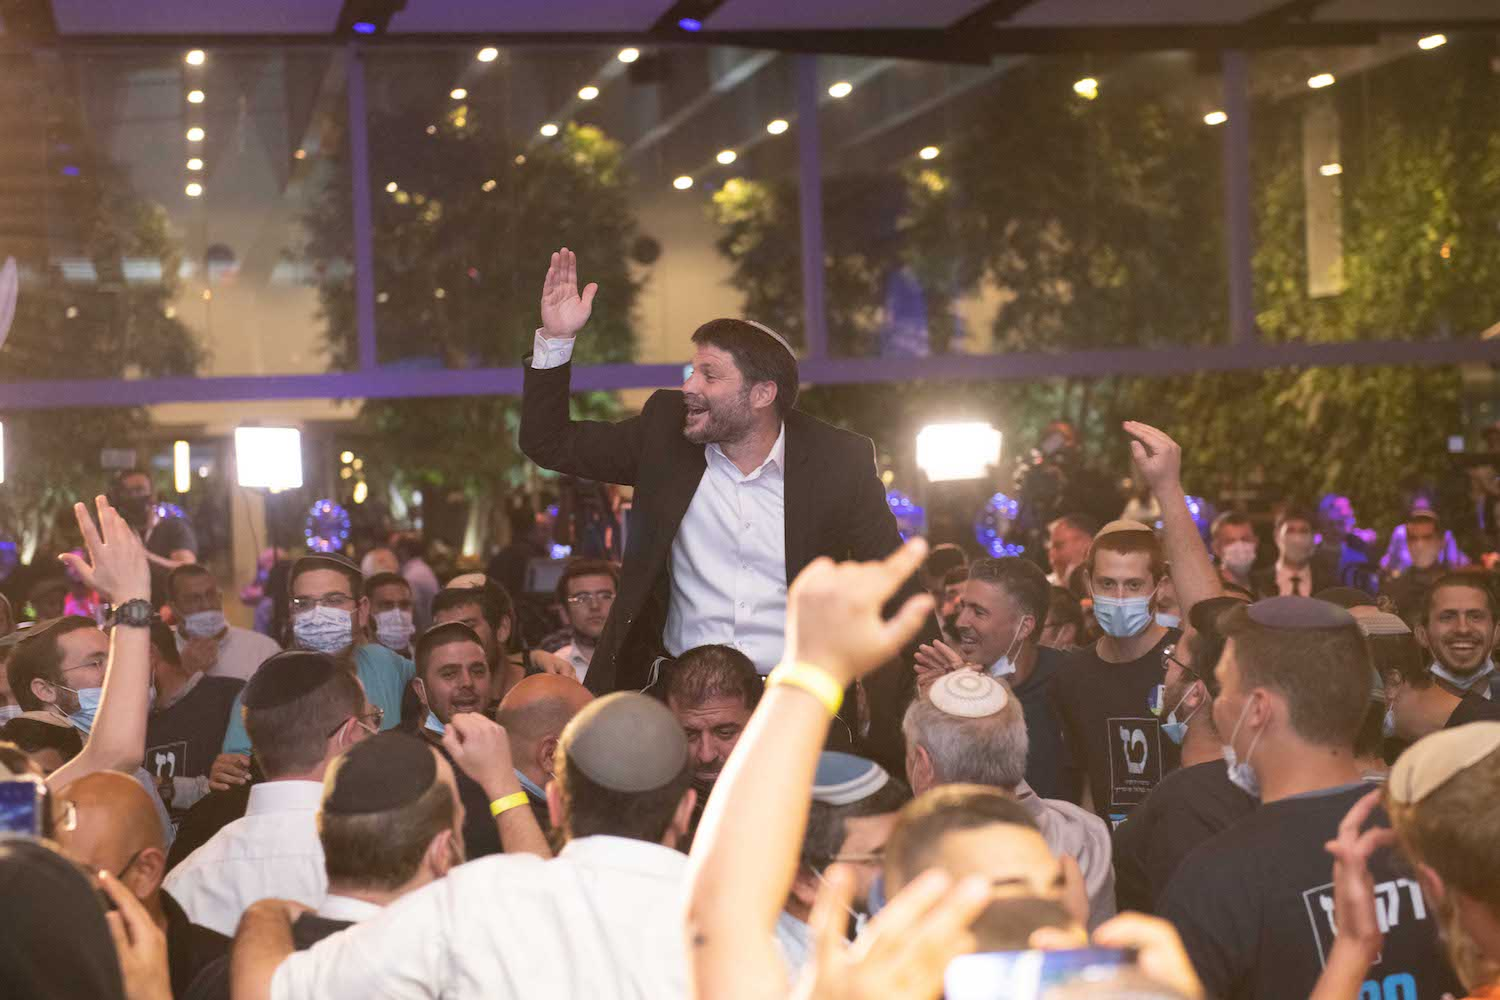 Head of the Religious Zionist Party Bezalel Smotrich is hoisted up by supporters at the party headquarters in Modi'in on election night, March 23, 2021. (Sraya Diamant/Flash90)